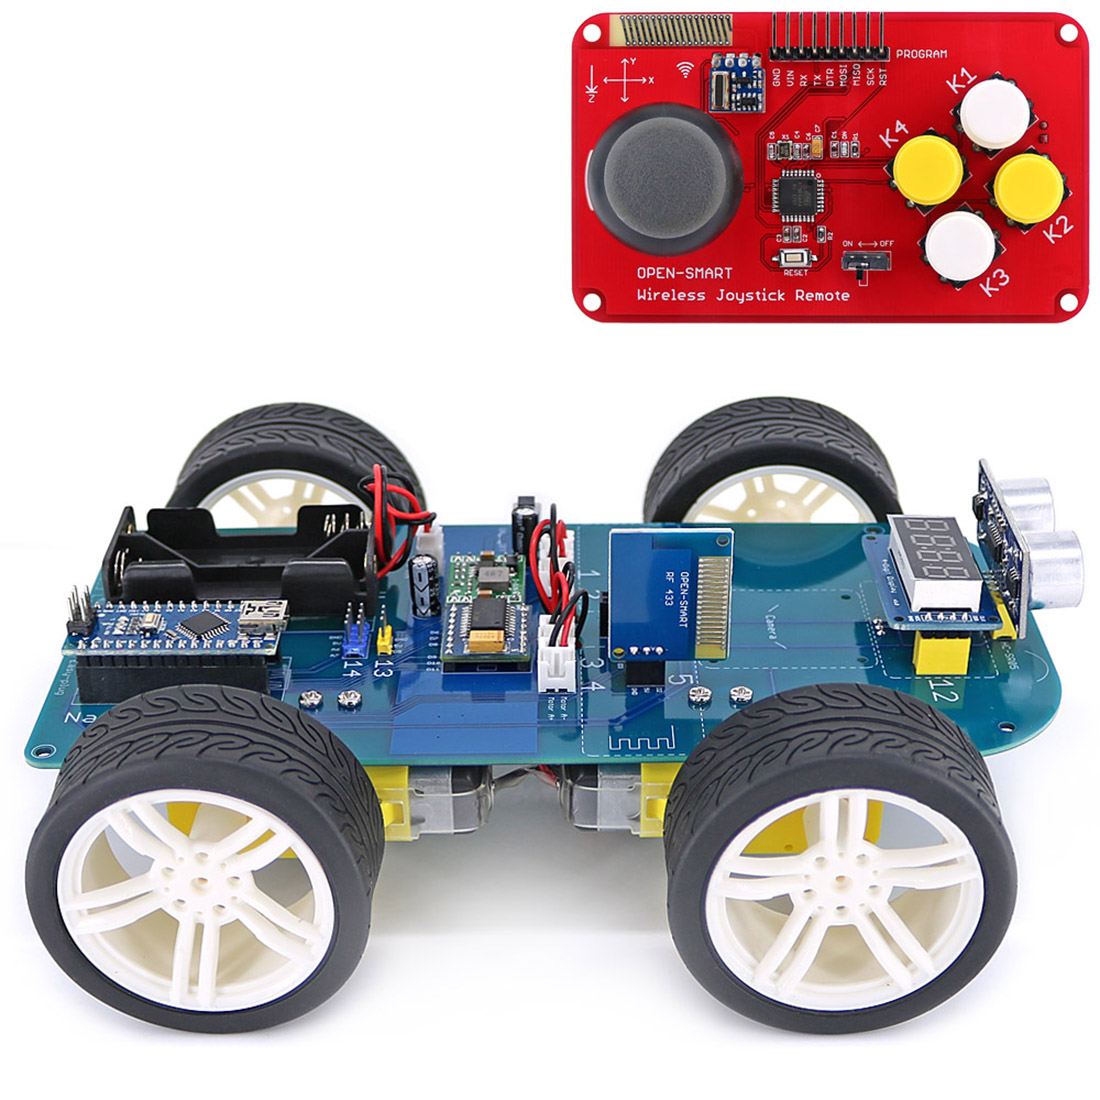 4WD 433MHz Wireless JoyStick Remote Control Rubber Wheel Gear Motor DIY Smart Car Kit For Arduino High-tech Programmable Toy